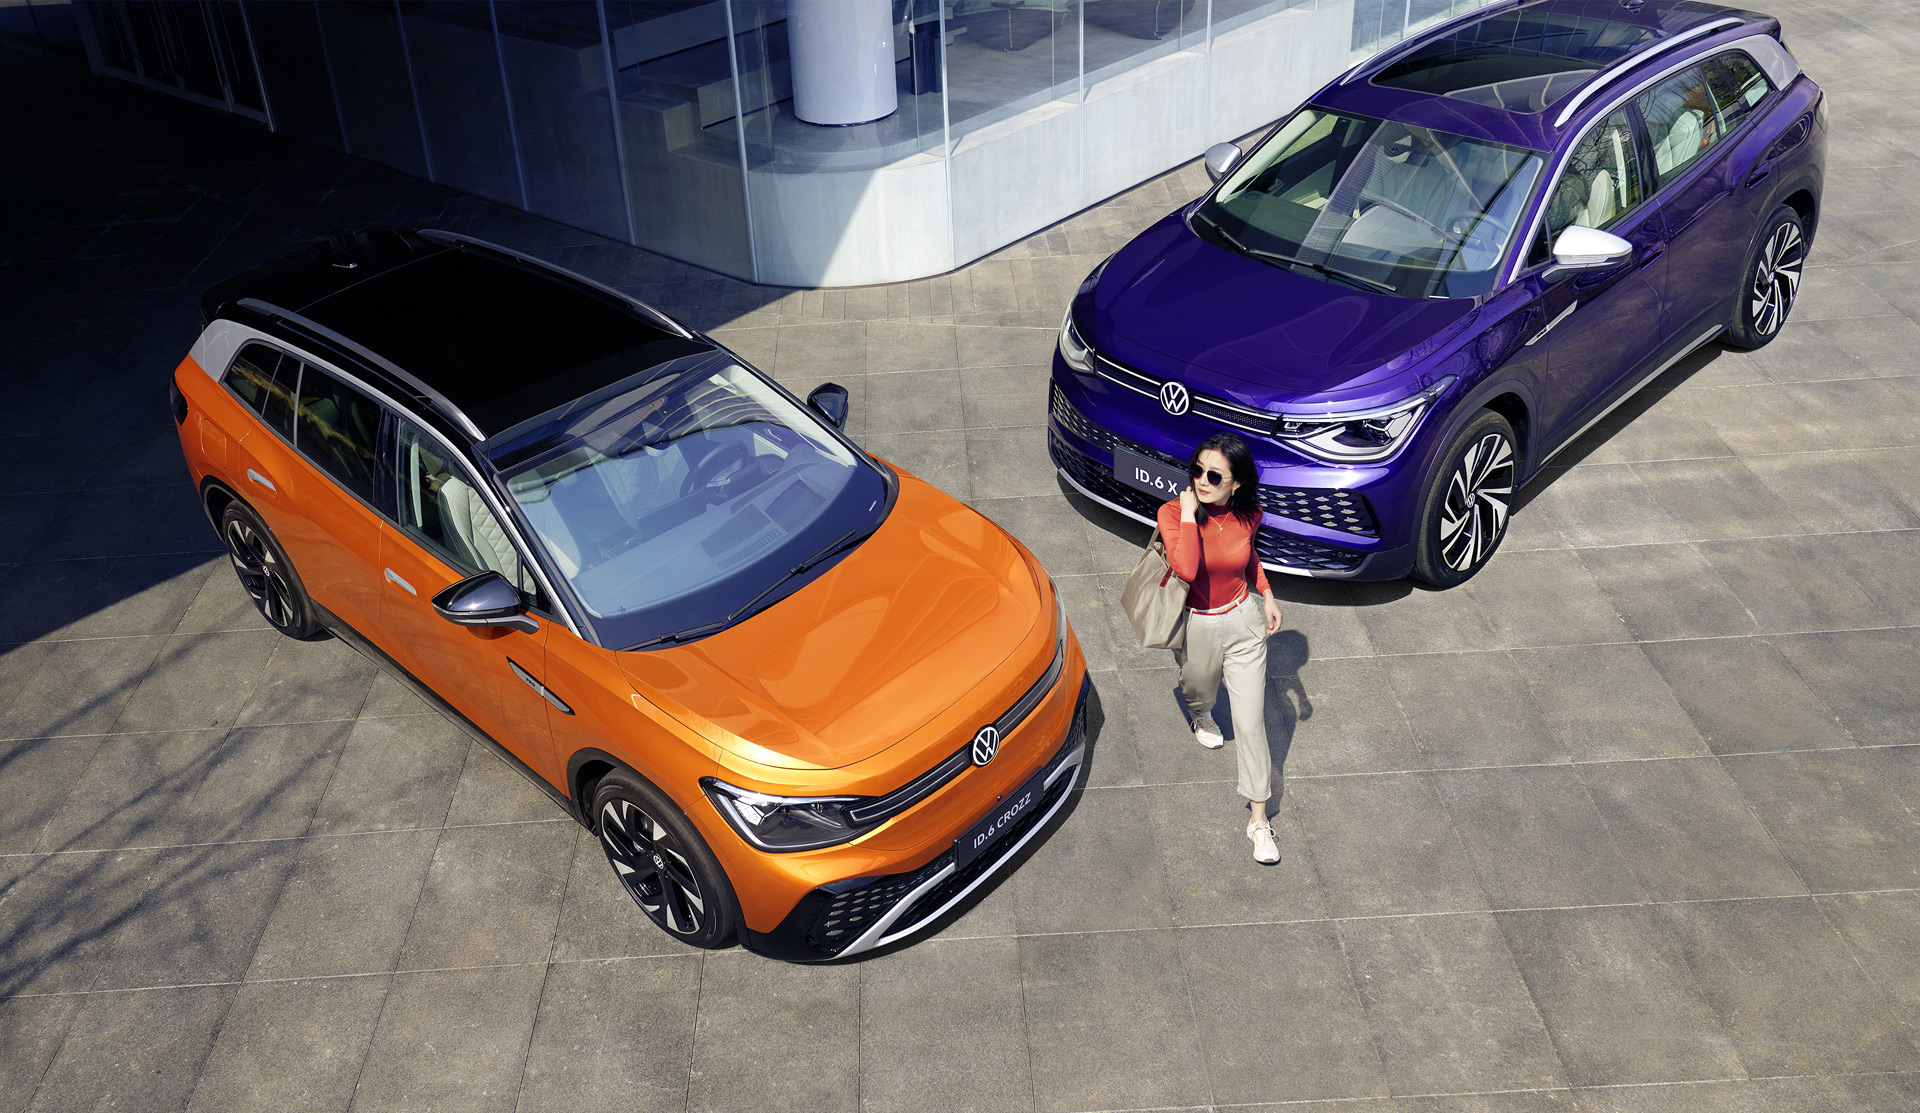 2022 Volkswagen ID.6 is a 3-row electric crossover for China